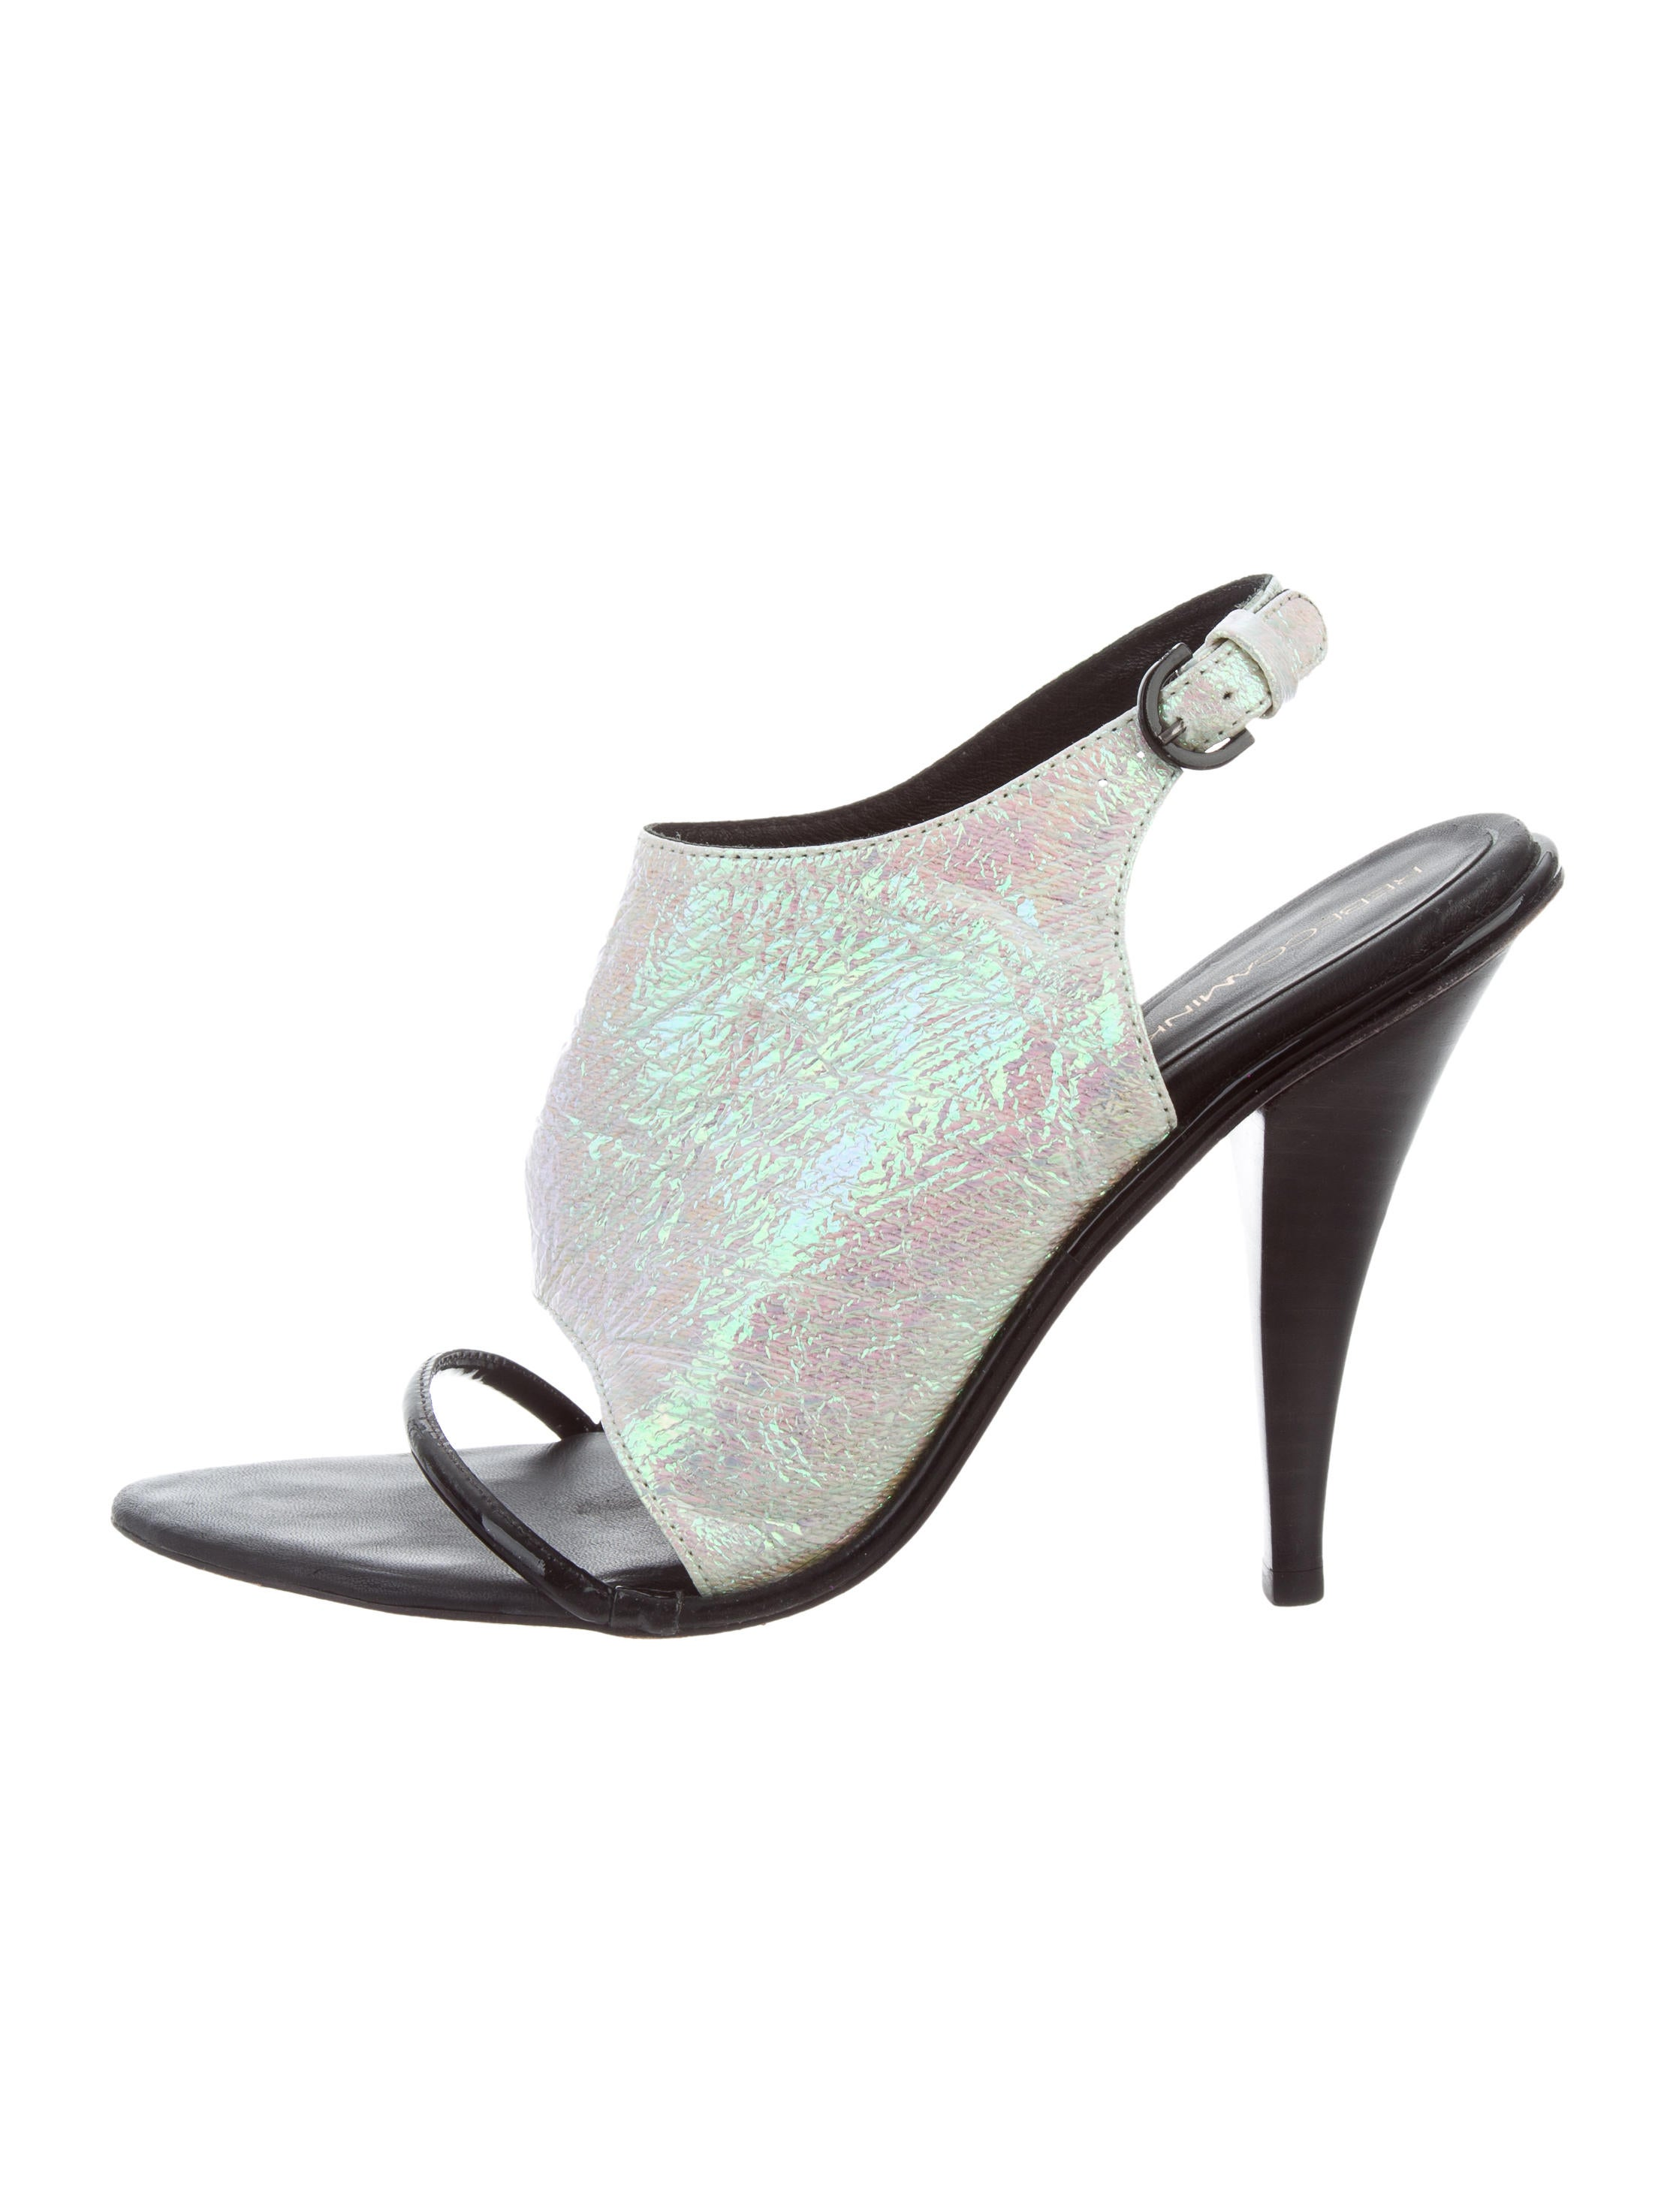 sale high quality Rebecca Minkoff Iridescent Leather-Trimmed Sandals sale comfortable recommend cheap price prices for sale shop offer cheap price tagJhBWk